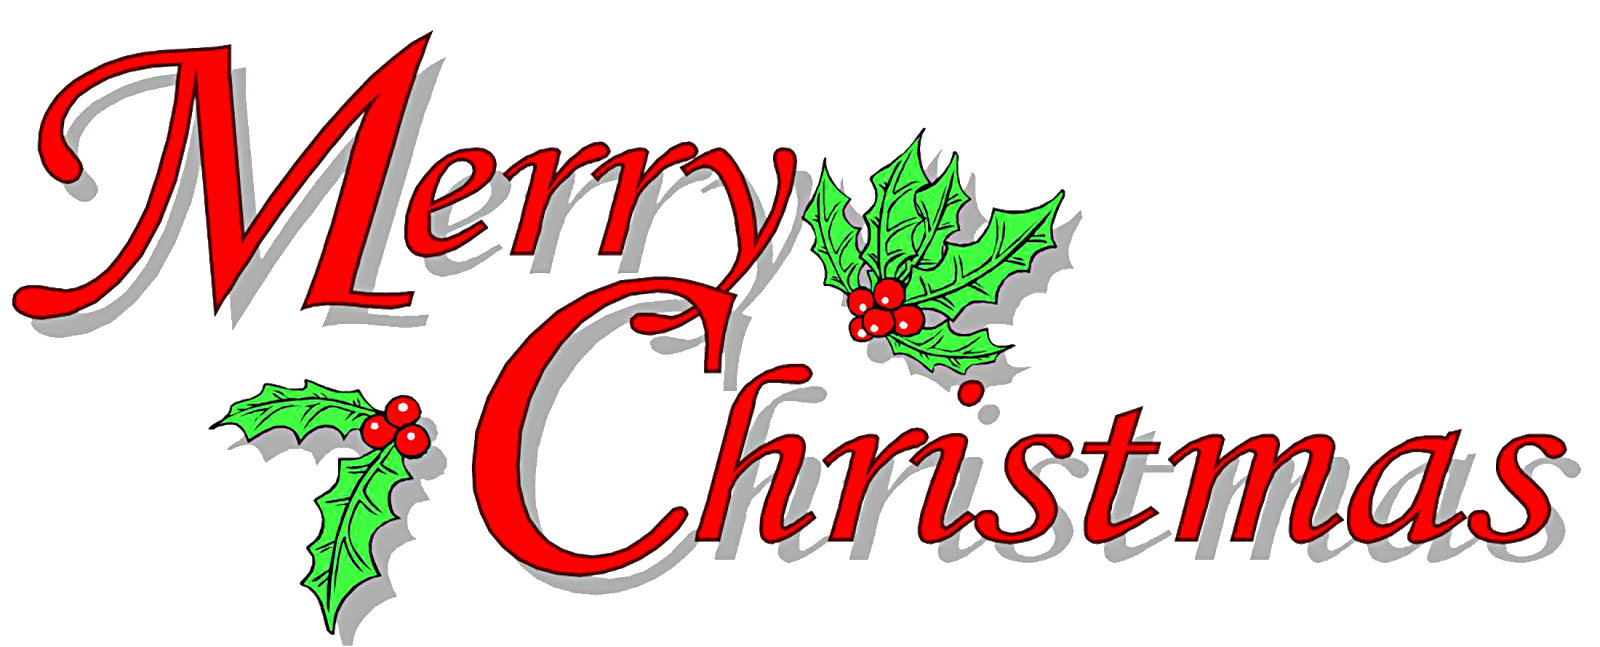 Merry christmas words clipart svg free download Free christmas message clipart - ClipartFest svg free download